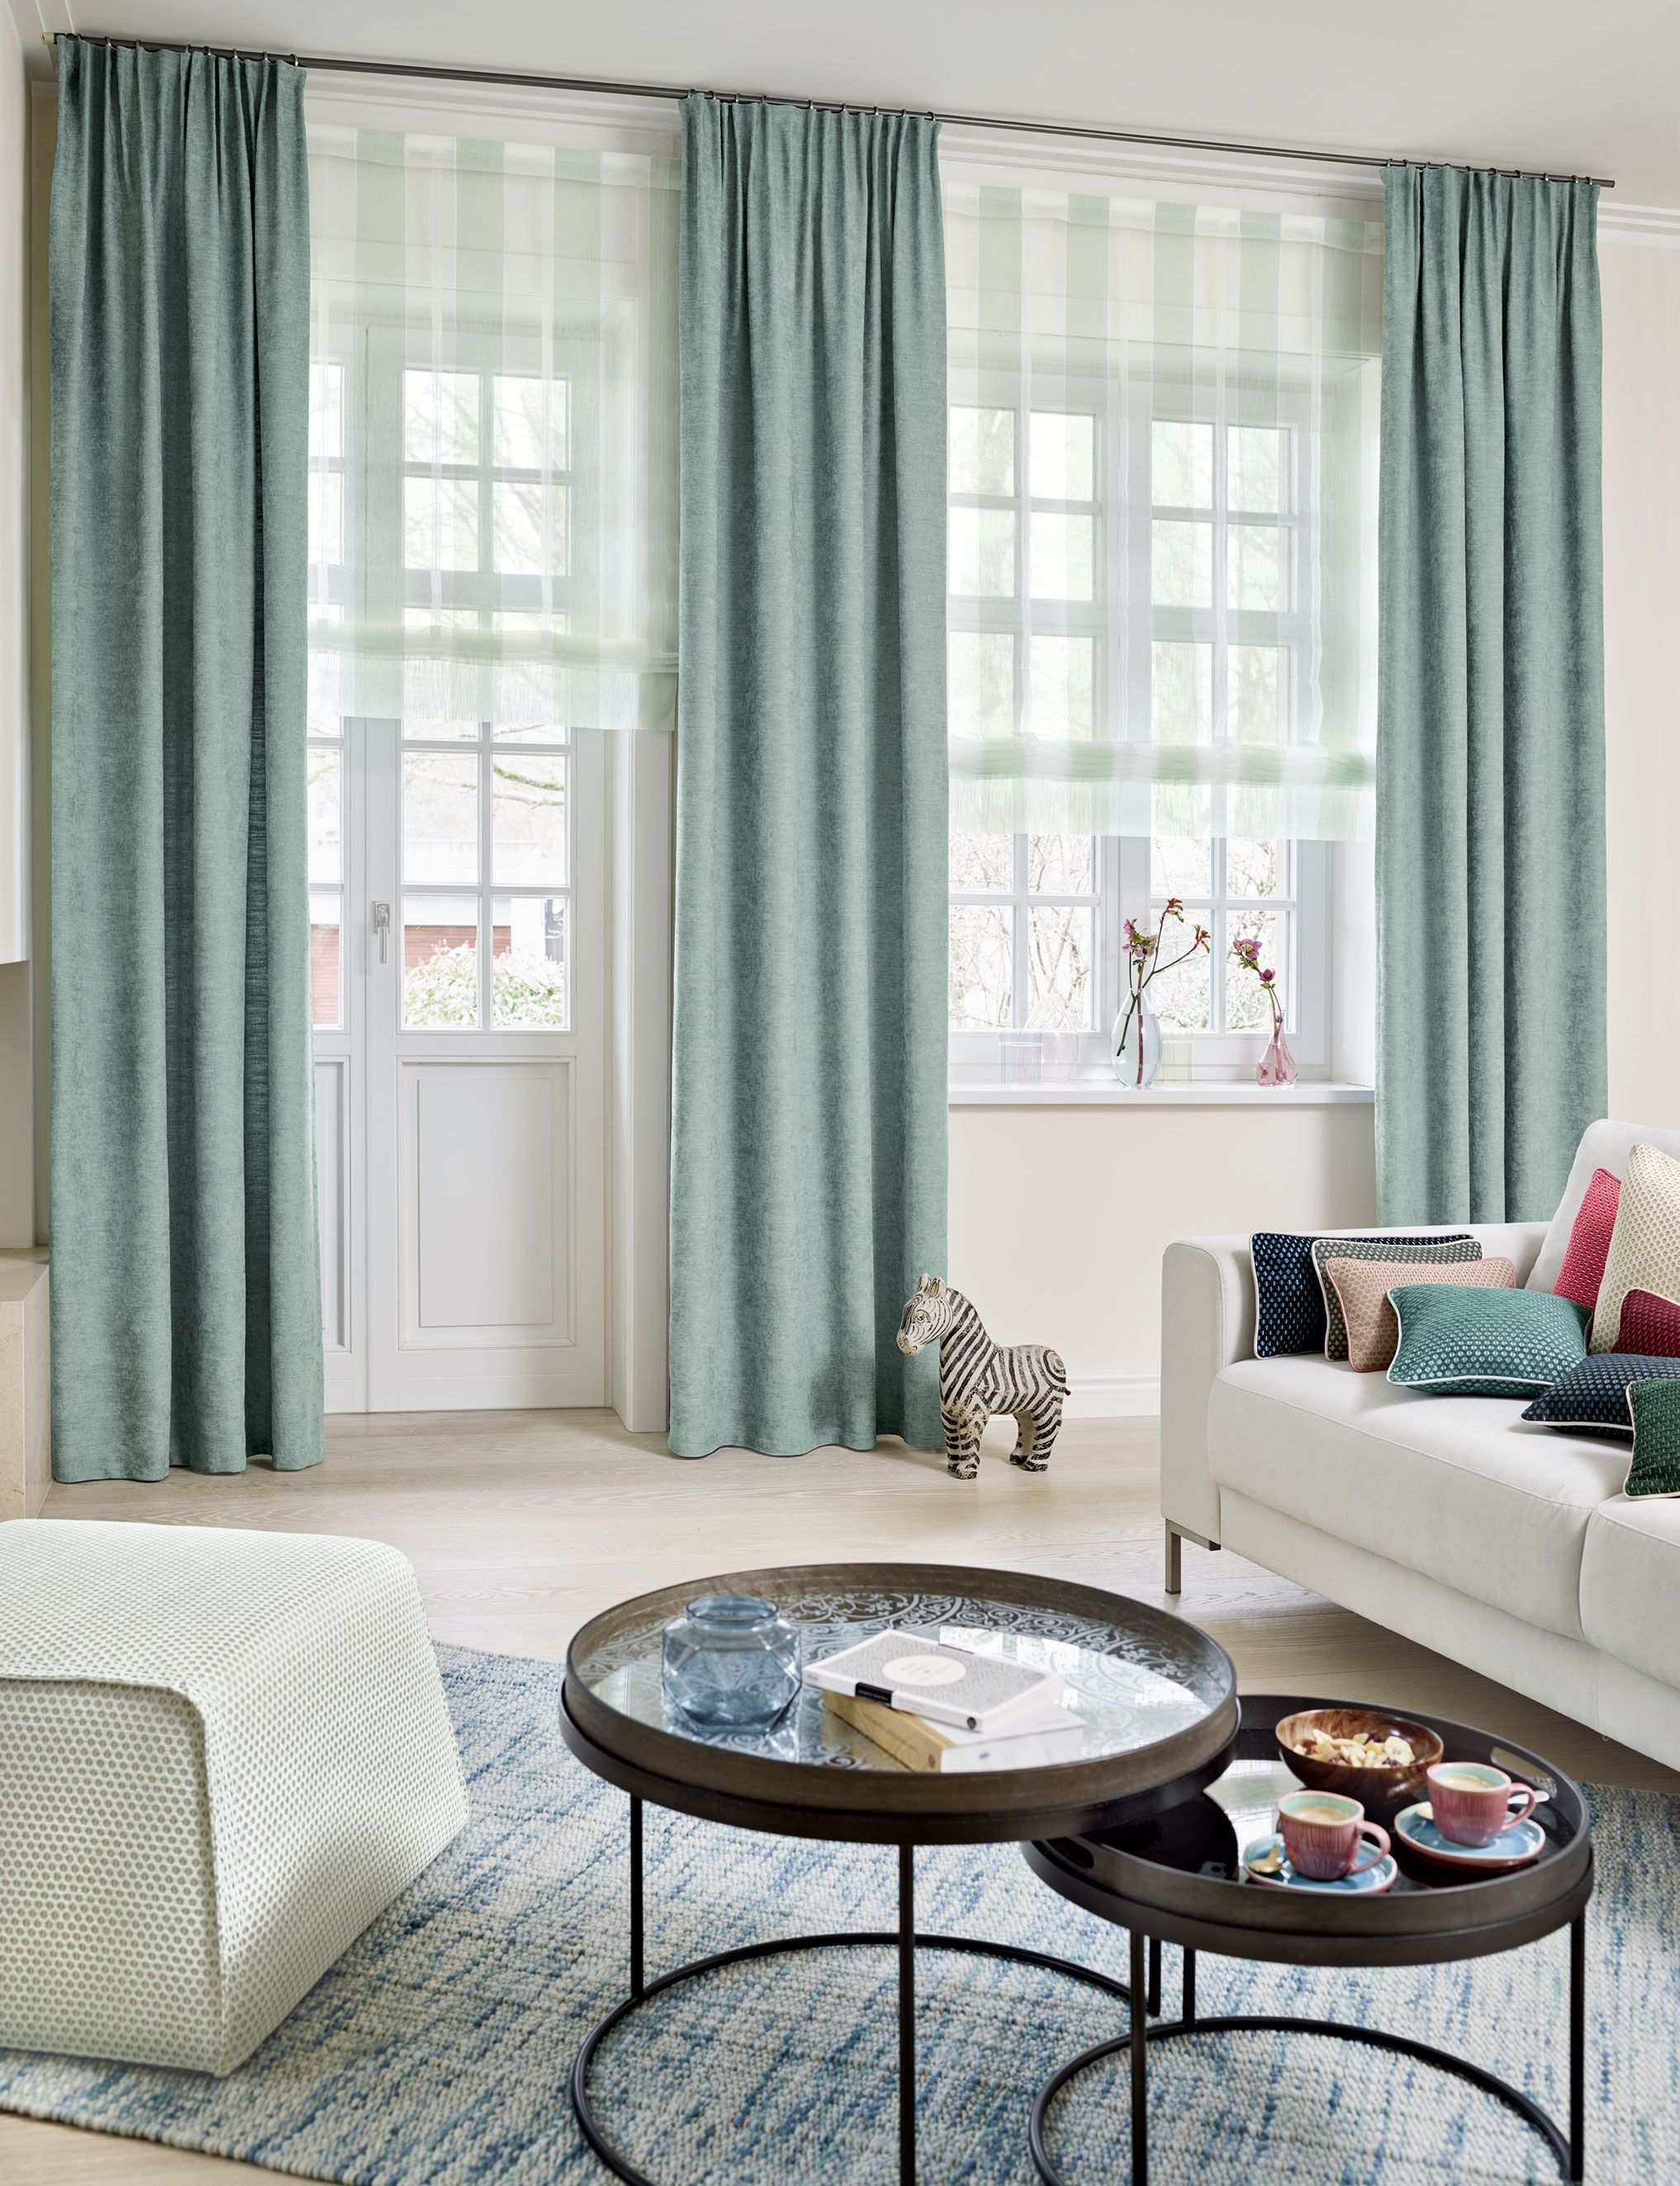 This Is An Ado Goldkante Fabric For All The Senses The Voluminous Material Is Cuddly To The Touch And Boasts A Natu Nobles Wohnzimmer Wohnen Fensterdekoration